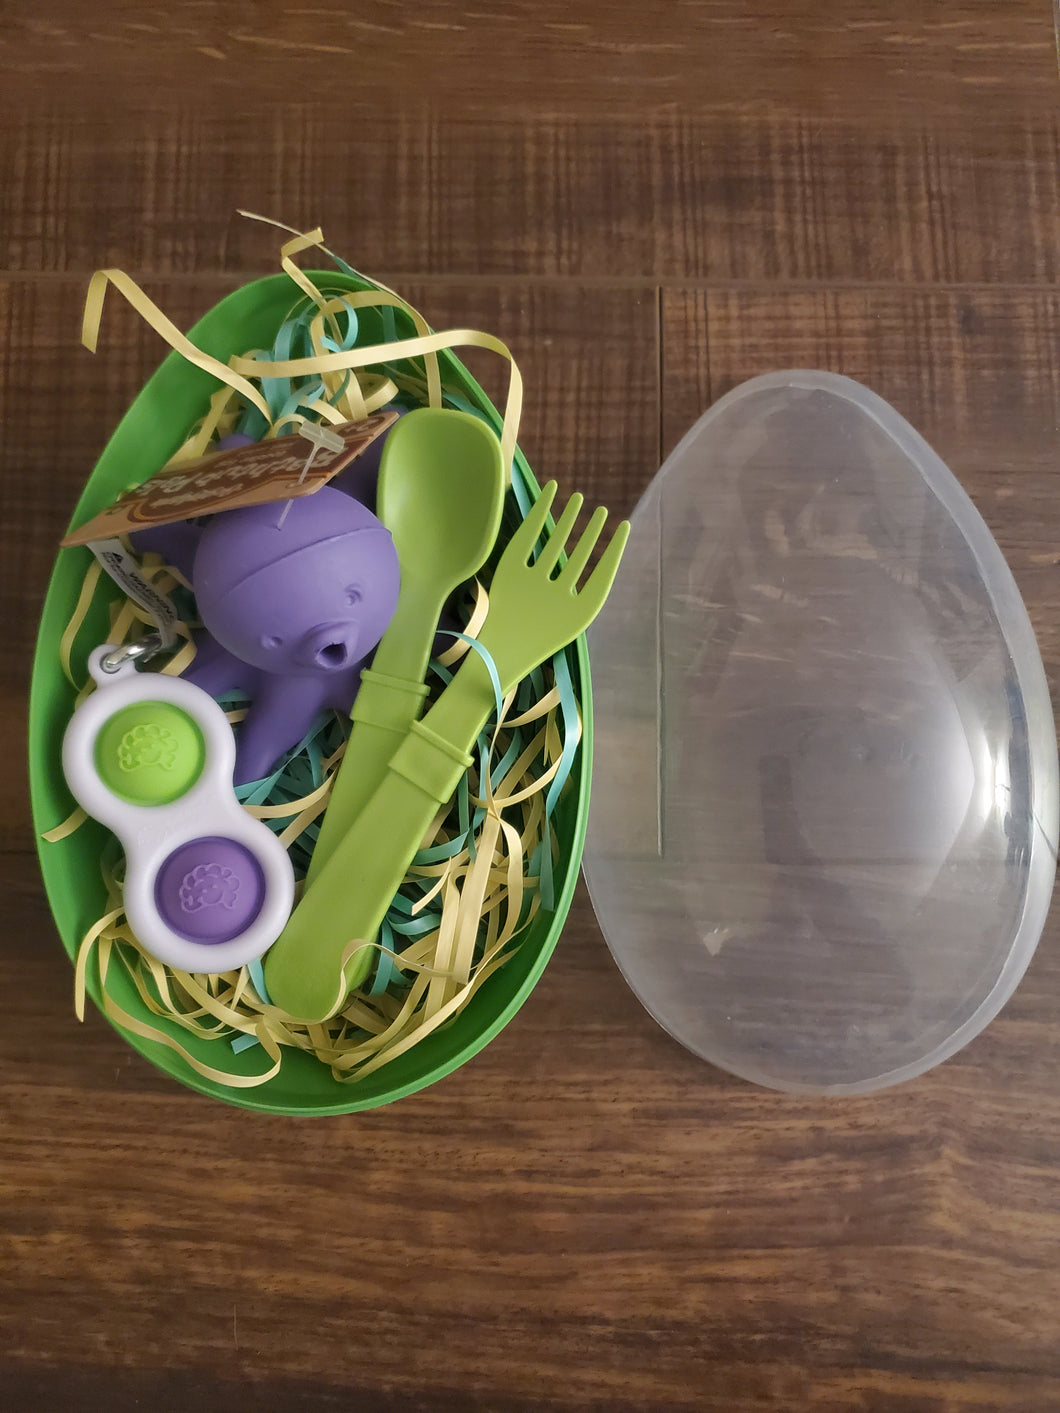 Easter Egg Green With Octopus, Fork And Spoon, and Key Chain